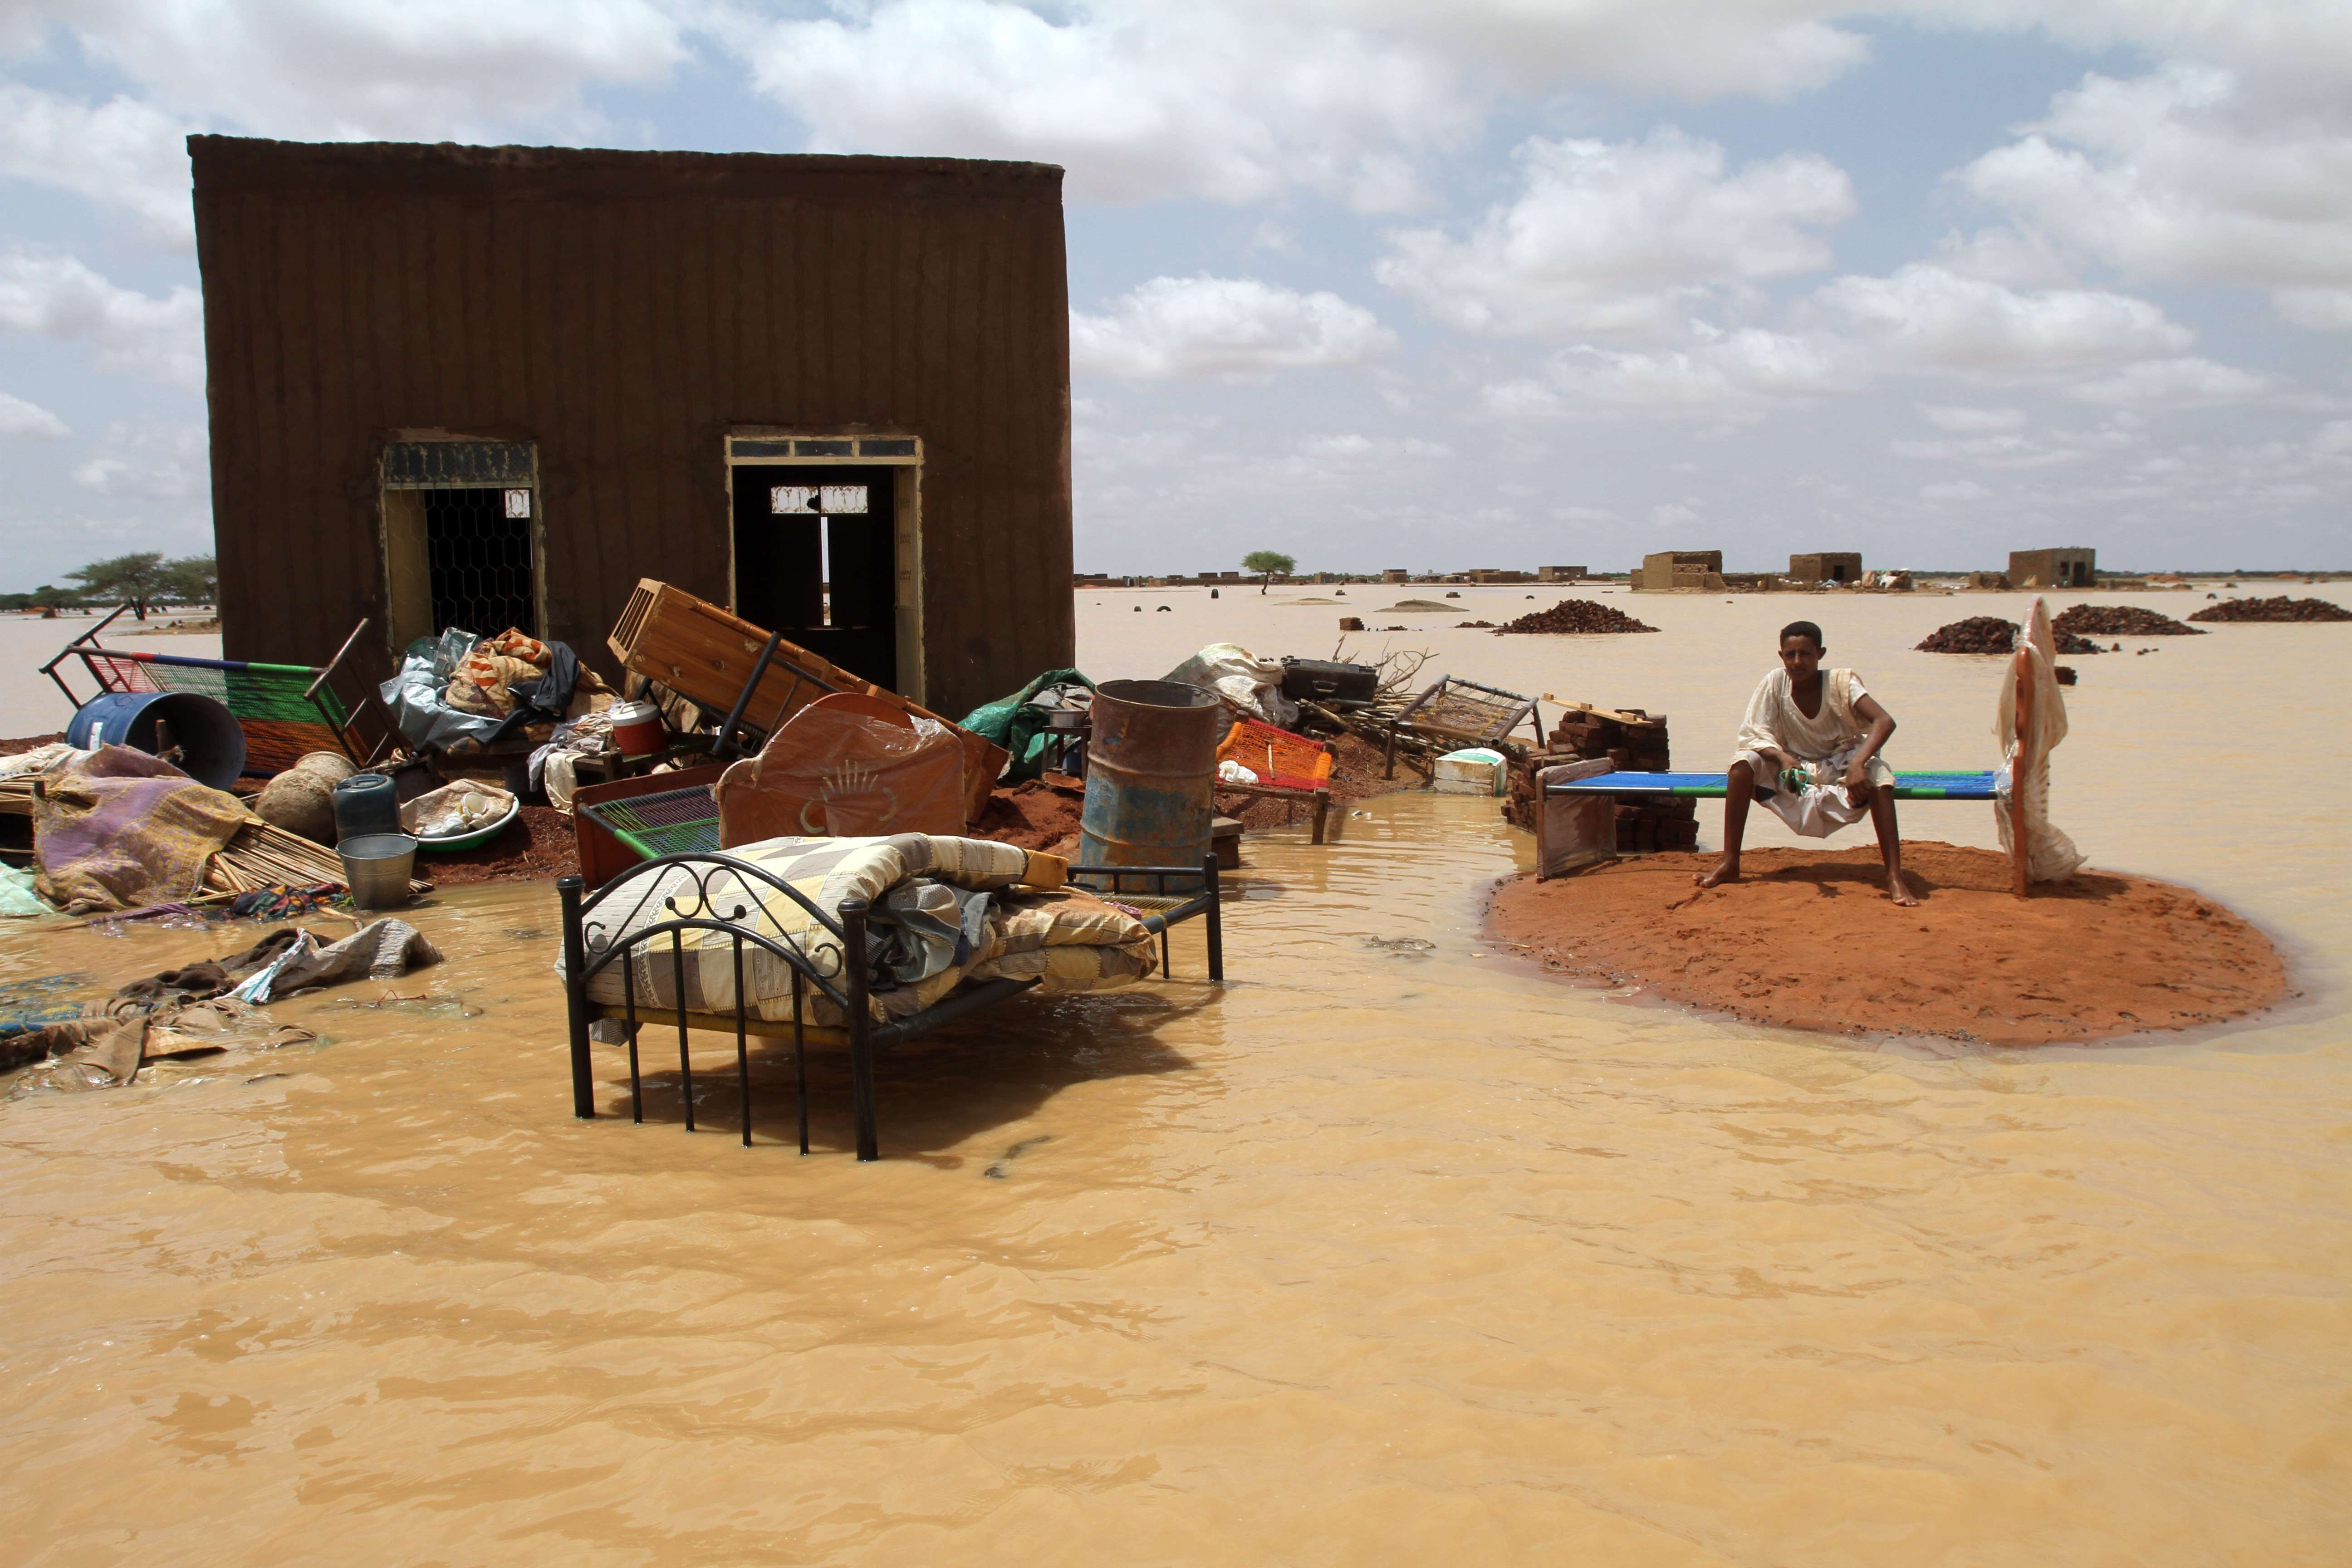 Sudanese man sits next to his house in a flooded street on the outskirts of the capital Khartoum on August 10, 2013. Drainage is poor in the capital, where even a little rain can cause flooding but this year's water surge was unusually severe. AFP PHOTO / ASHRAF SHAZLY